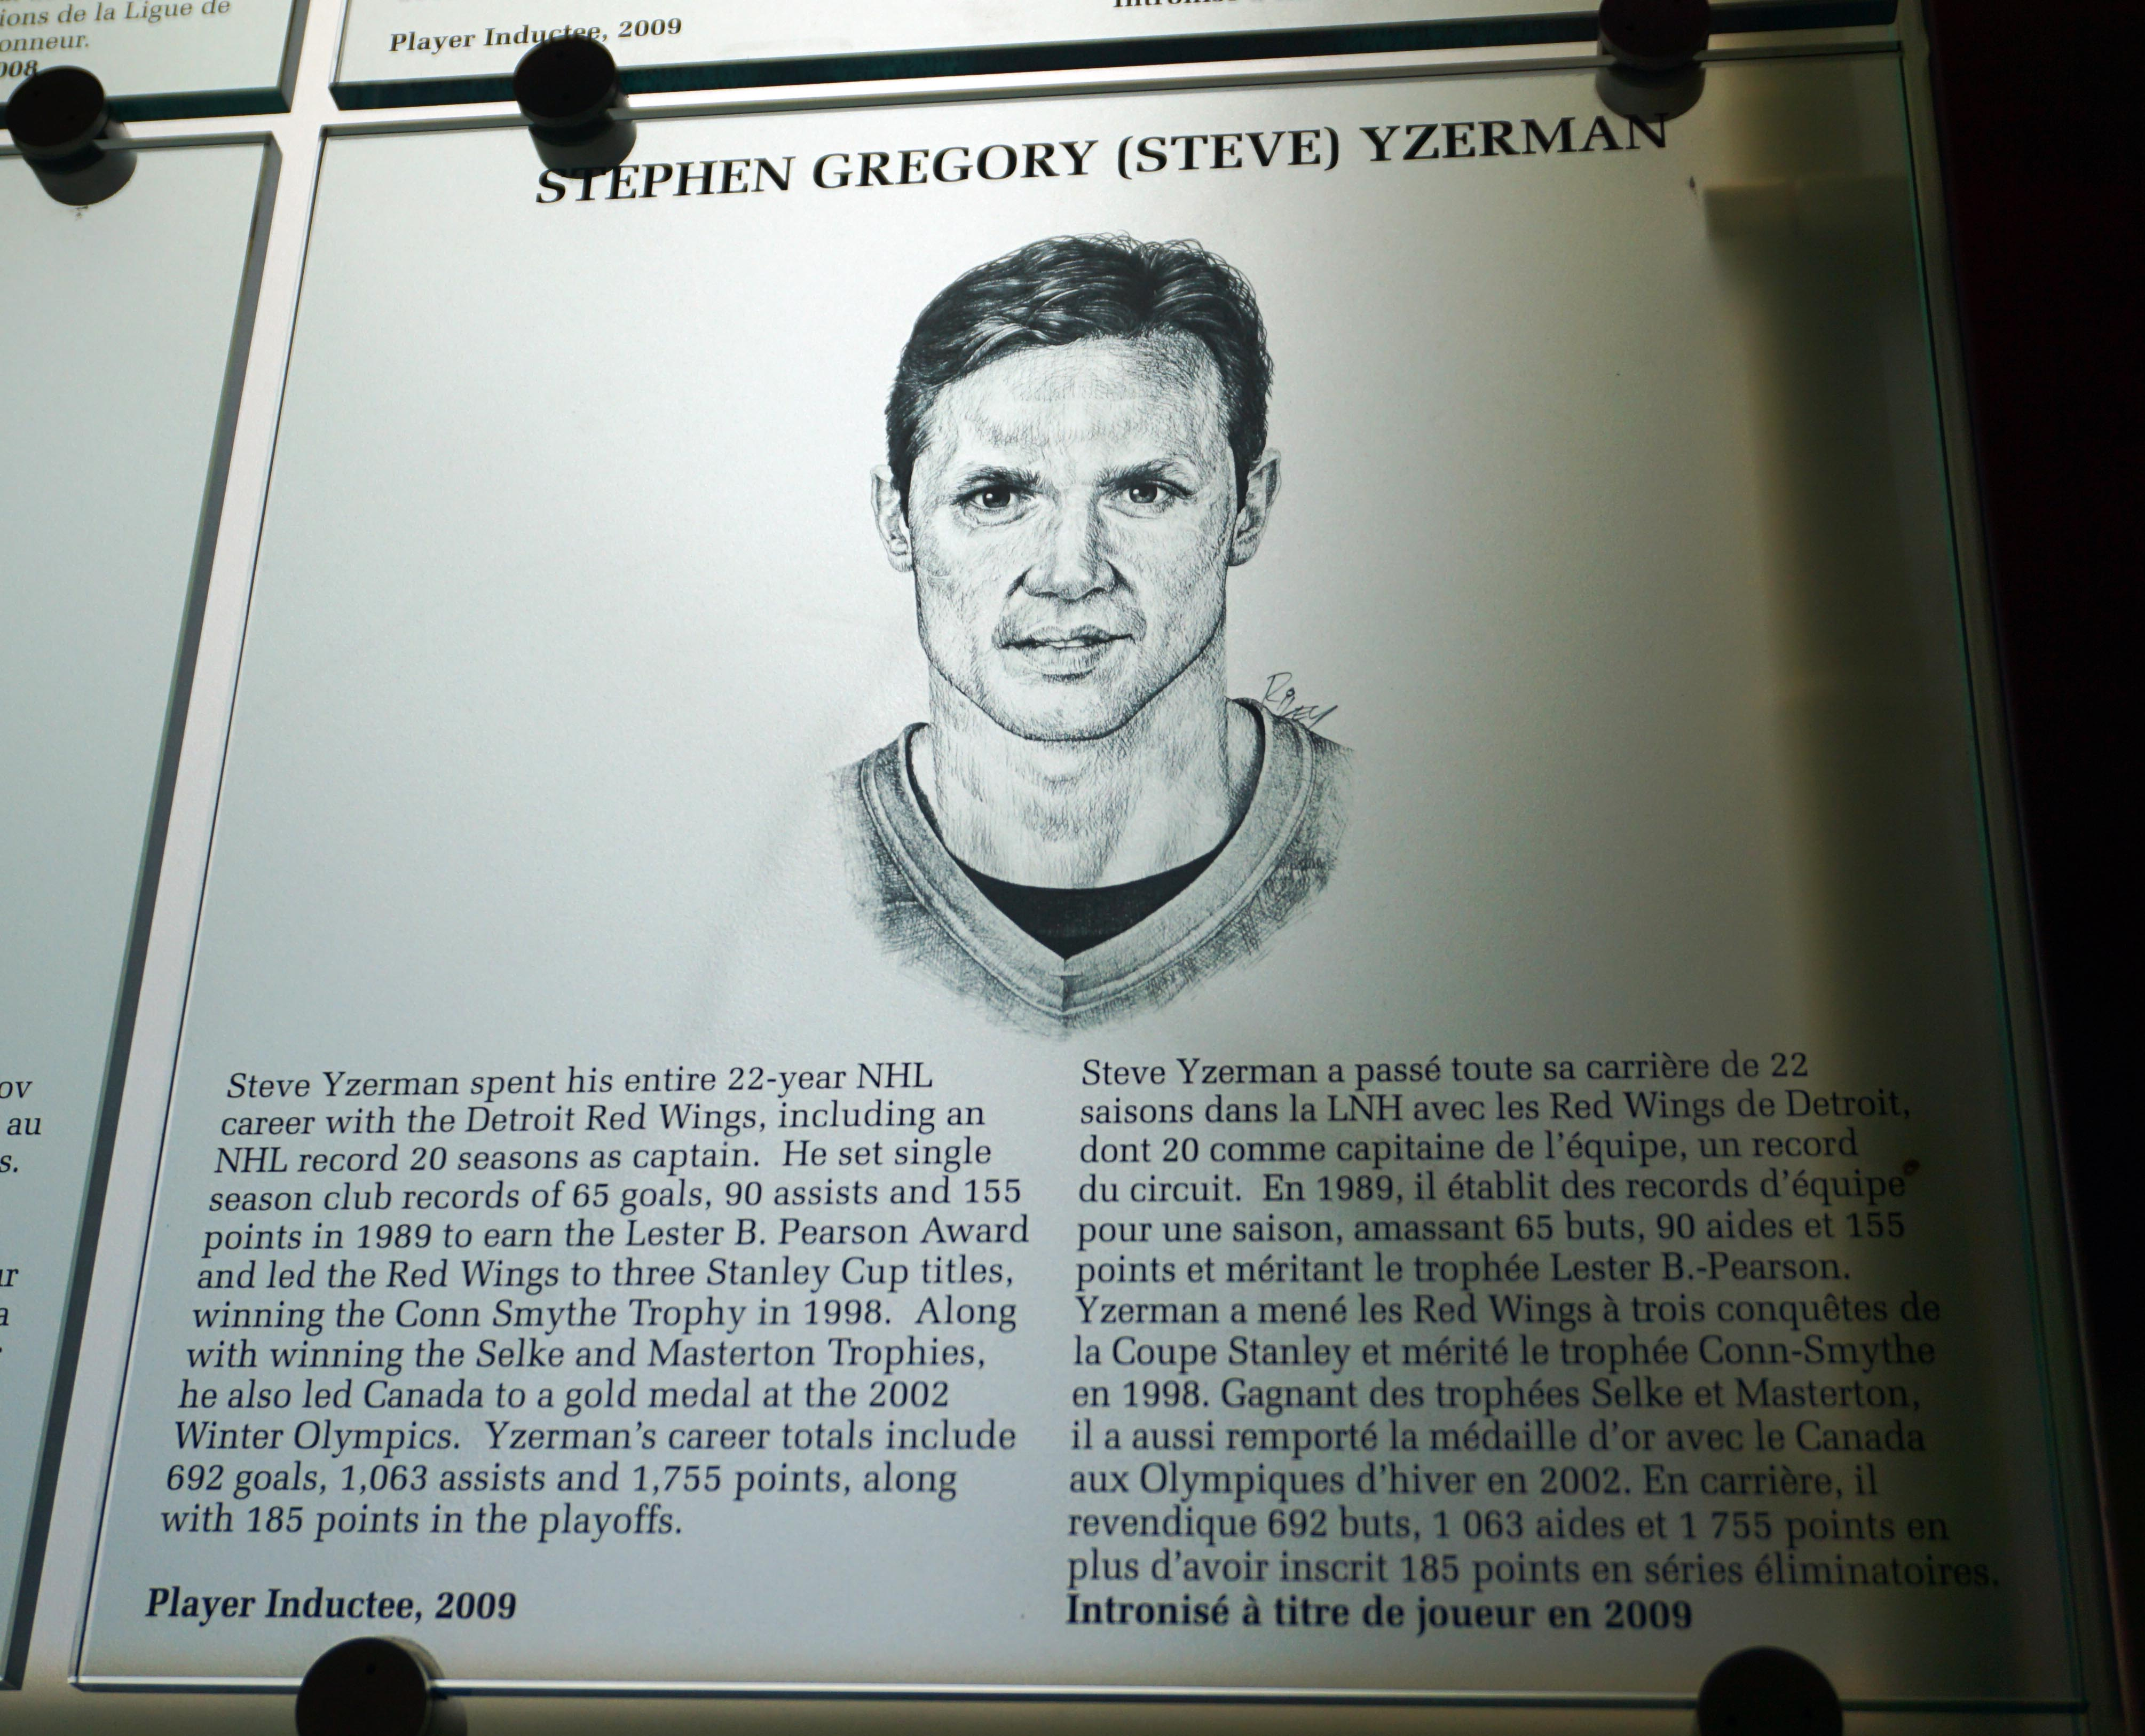 Steve Yzerman's plaque in the Hockey Hall of Fame